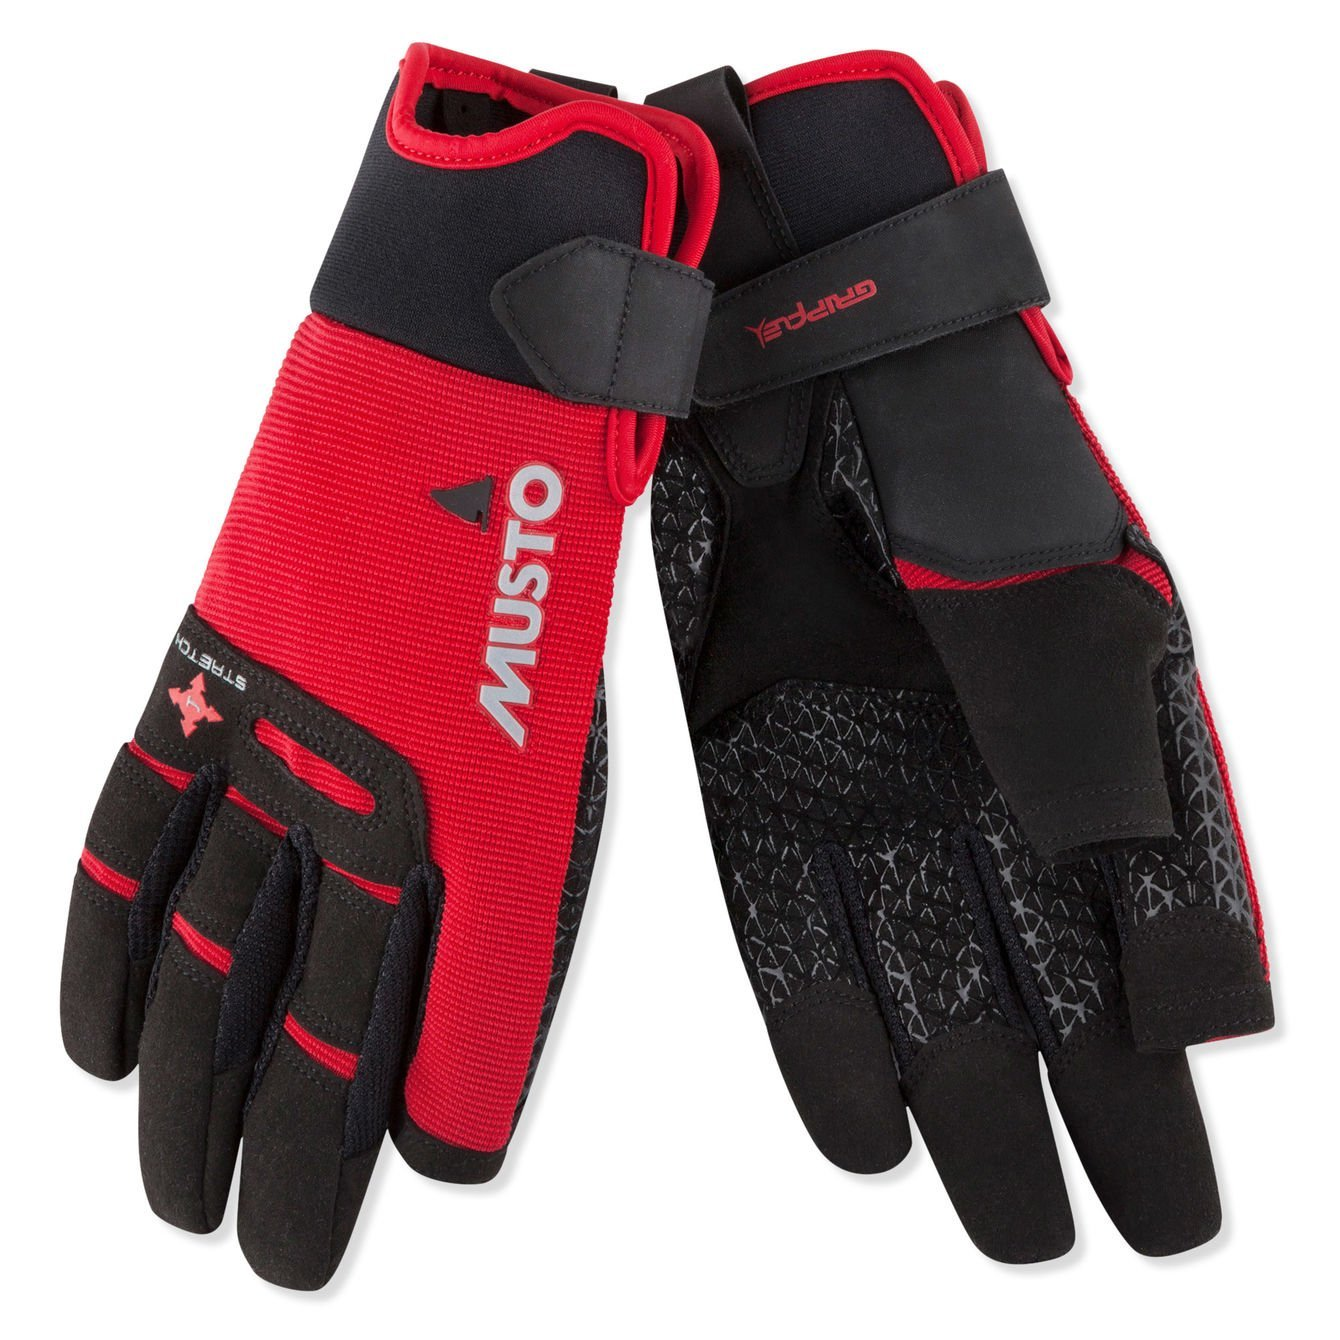 Musto Performance Long Finger Sailing Gloves - 2019 - Black XS by Musto